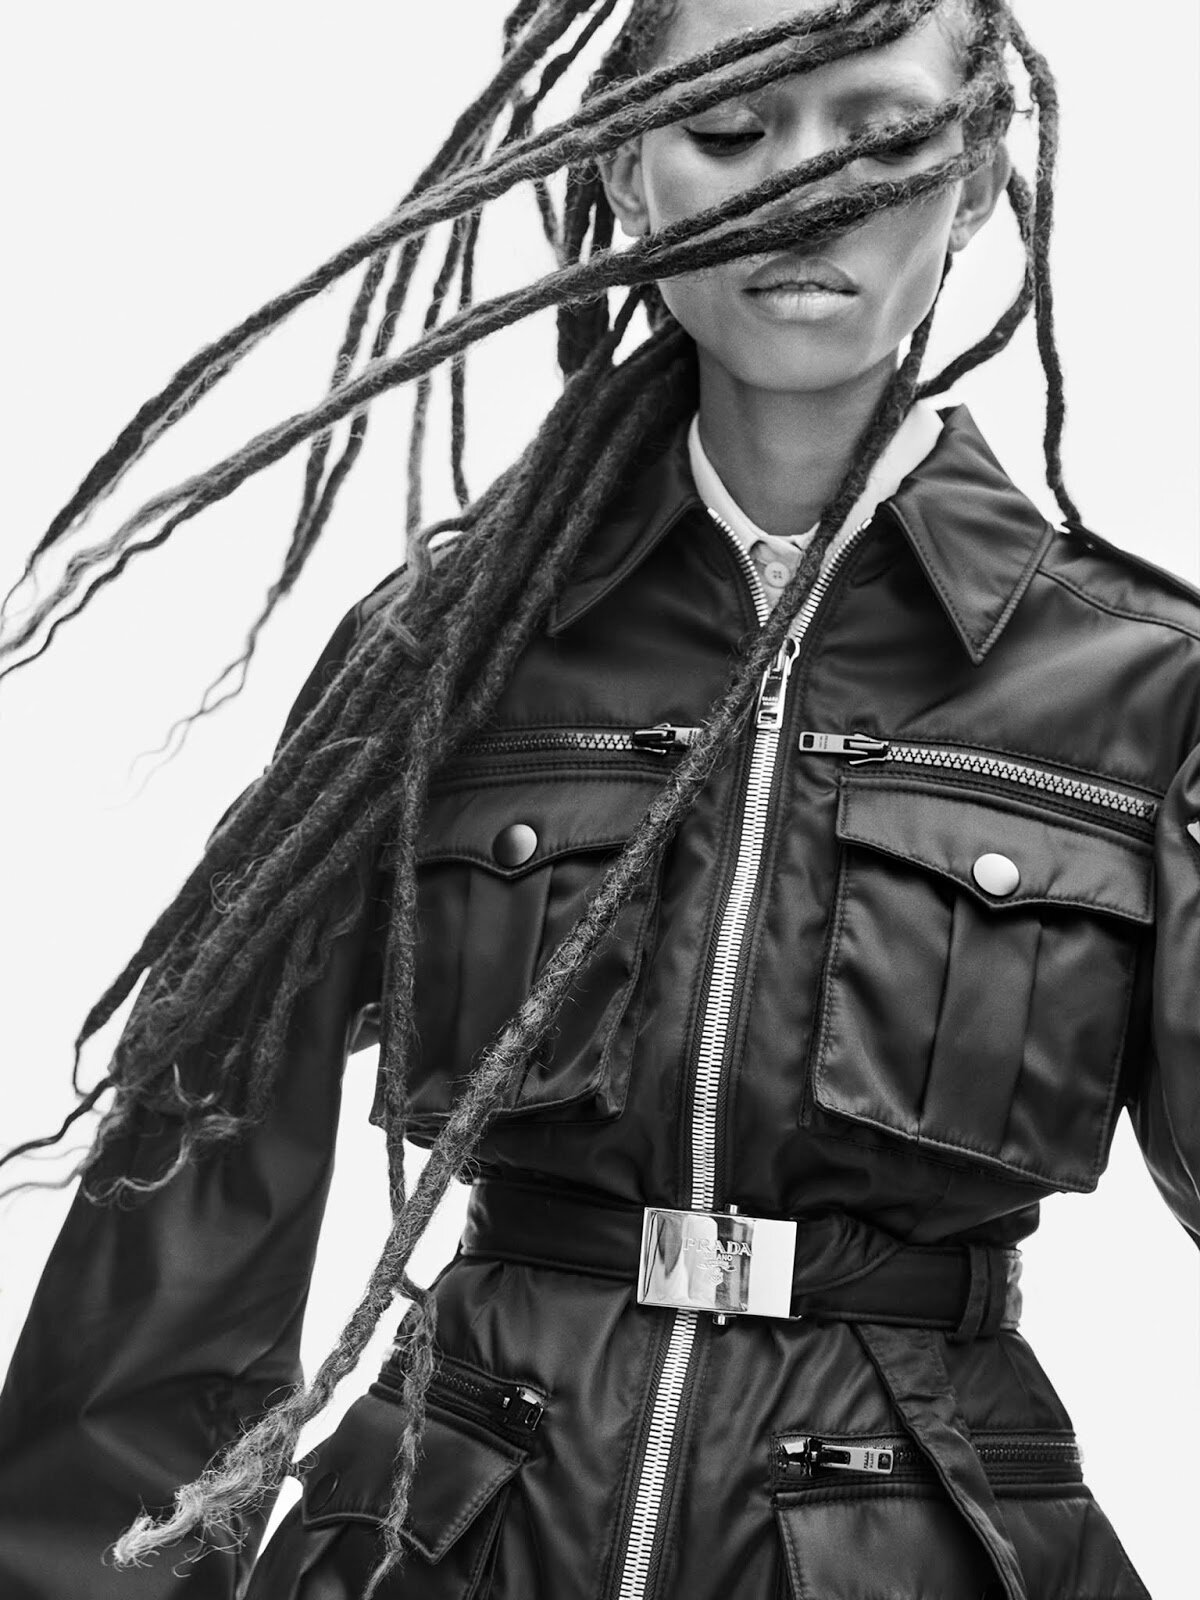 Miuccia Prada's waist-cinching belts temper her toughened-up utility pieces, creating a womanly silhouette in wear-forever cargo jackets.  Jacket, and shirt, both Prada.  Adesuqa Aighewi by Philip Messmann.